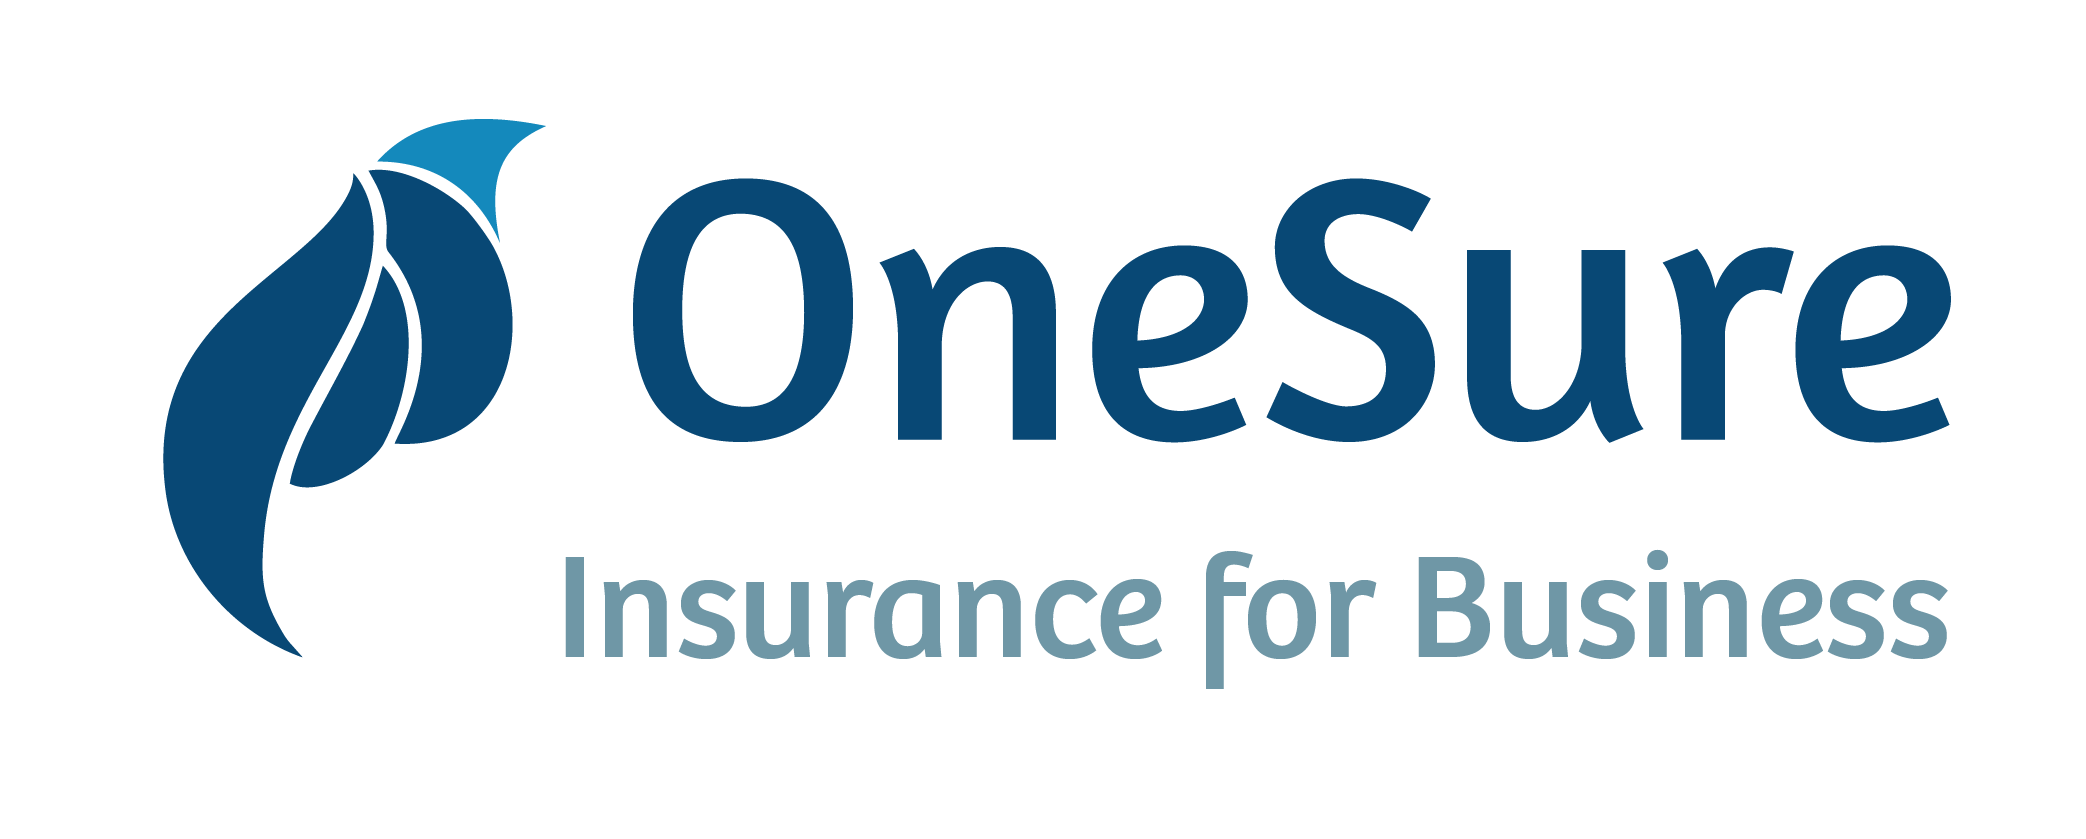 Residential Landlords Insurance Quote Onesure Insurance For Business